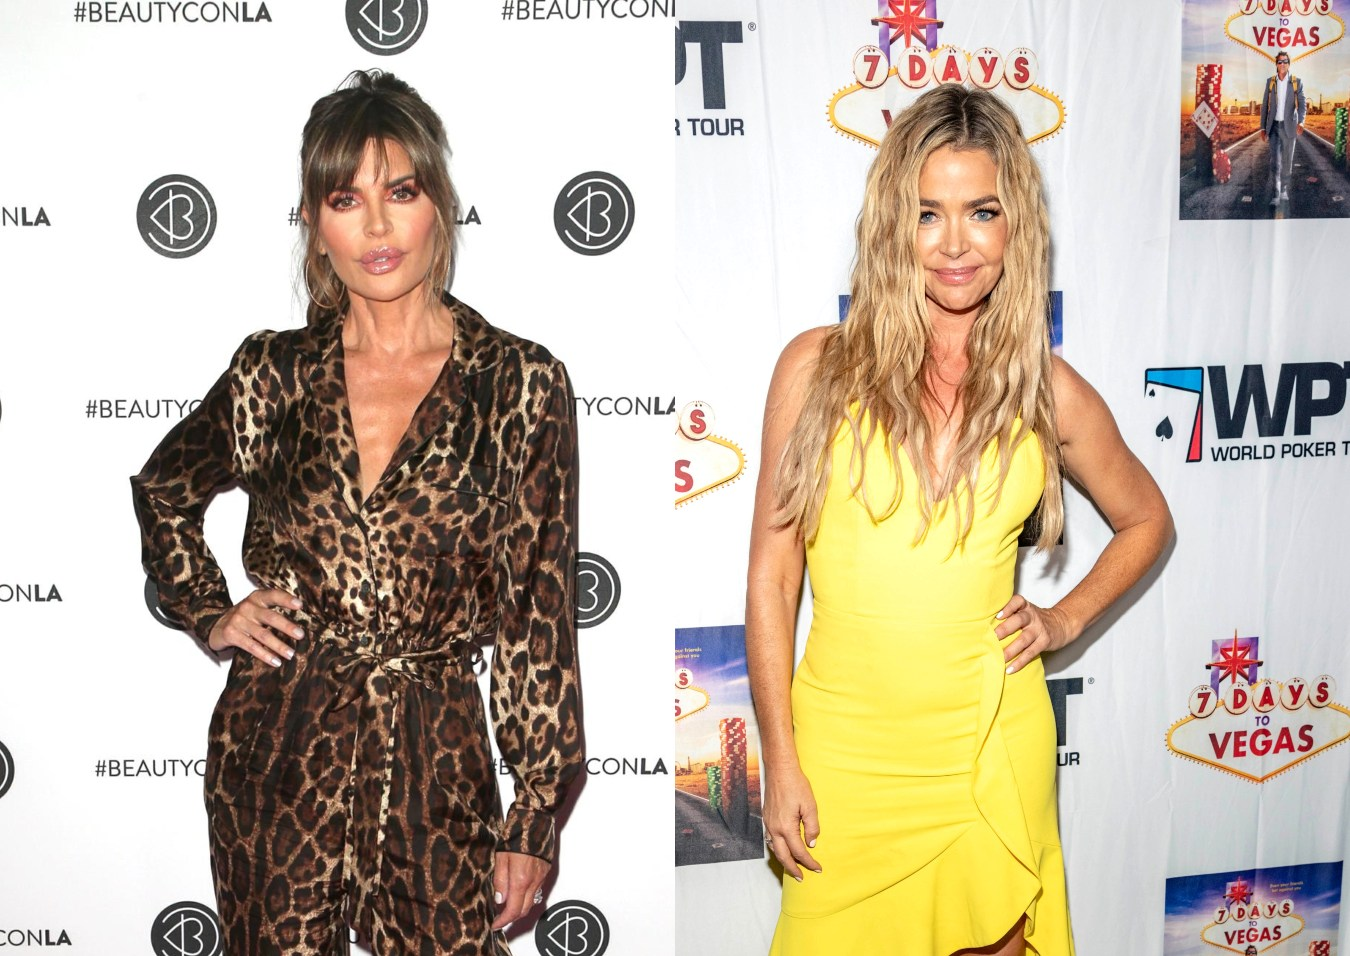 Lisa Rinna Calls Out Denise Richards For Skipping RHOBH Finale Party, See Lisa's Post as Denise Opens Up About a Health Crisis